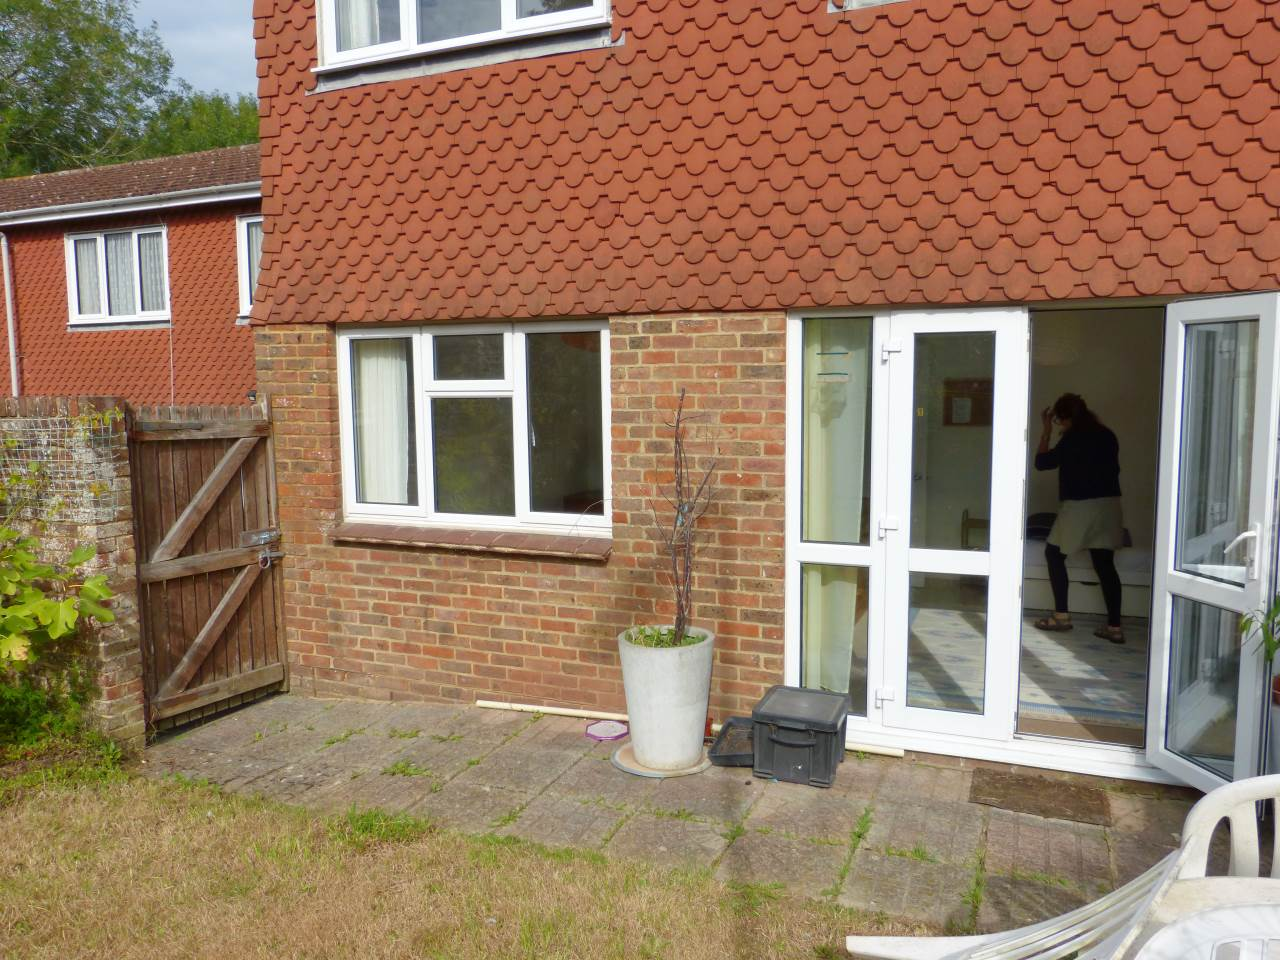 4 bed house to rent in 16 Hoopers Close Lewes BN7 2EH  - Property Image 1